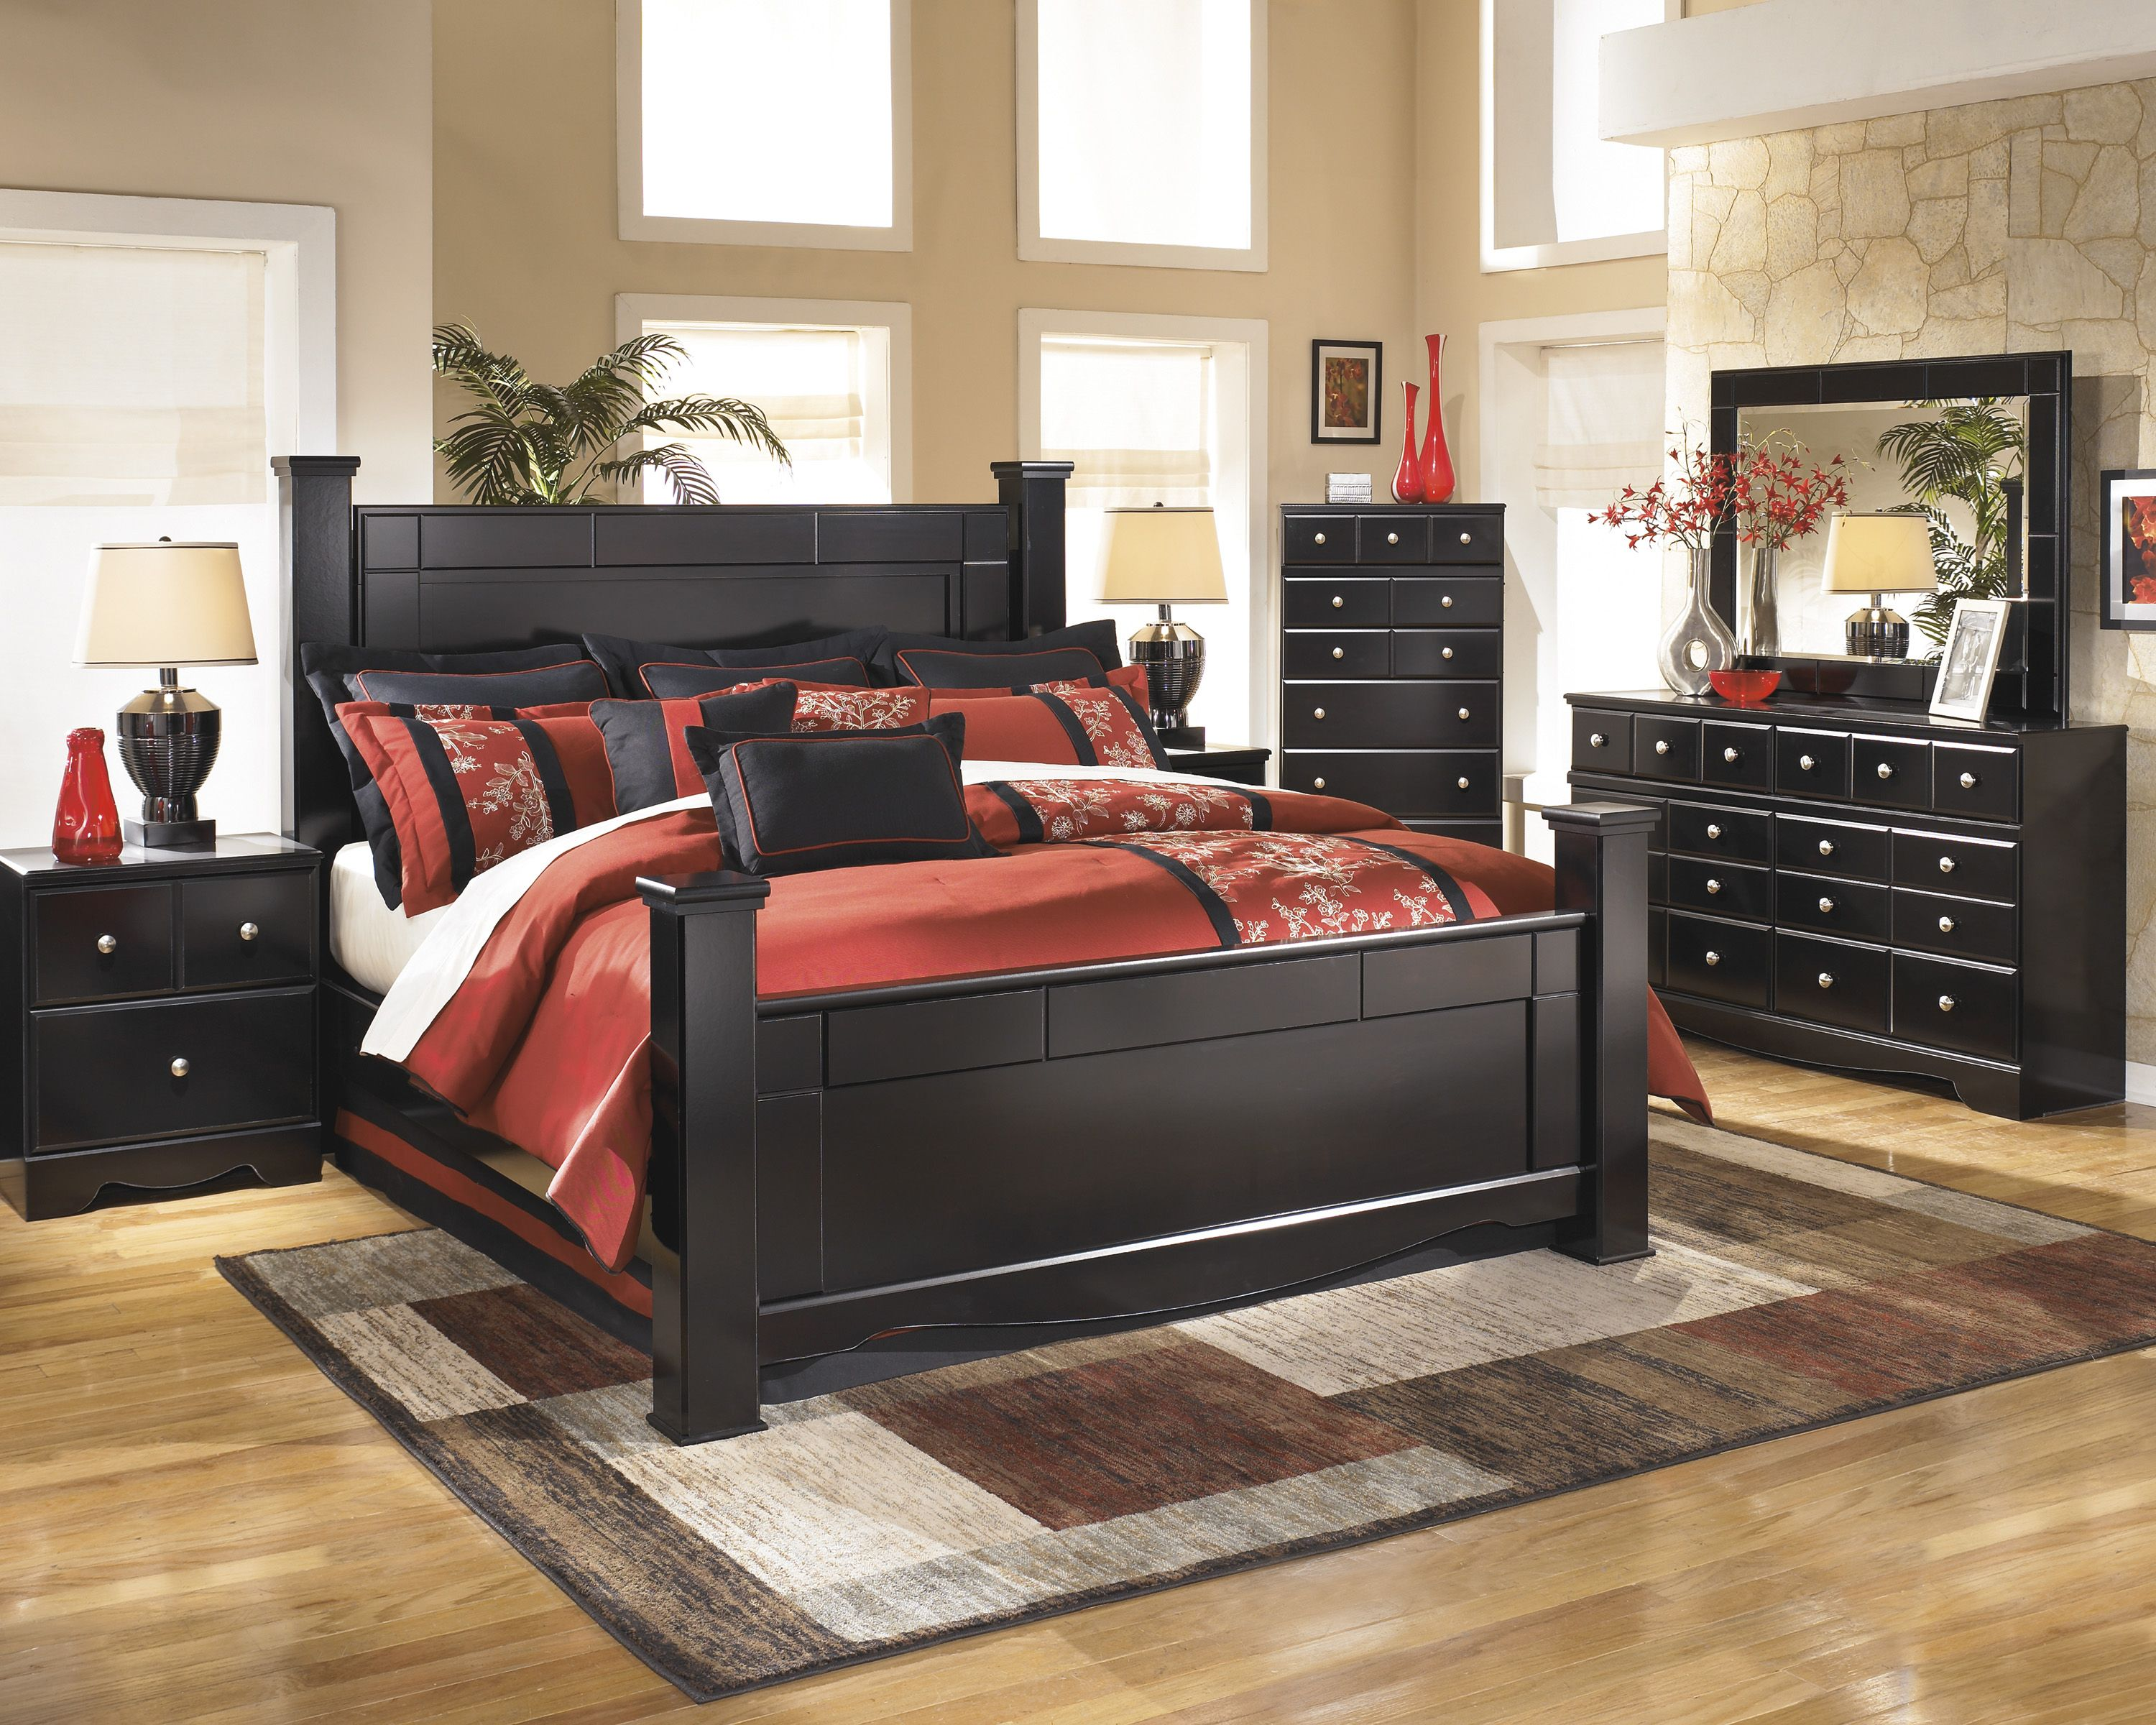 This Black 4 Poster Bed Seems To Catch Everyone S Eye Defiantly A Fan Fav Cheap Bedroom Sets King Bedroom Sets Black Bedroom Furniture Set